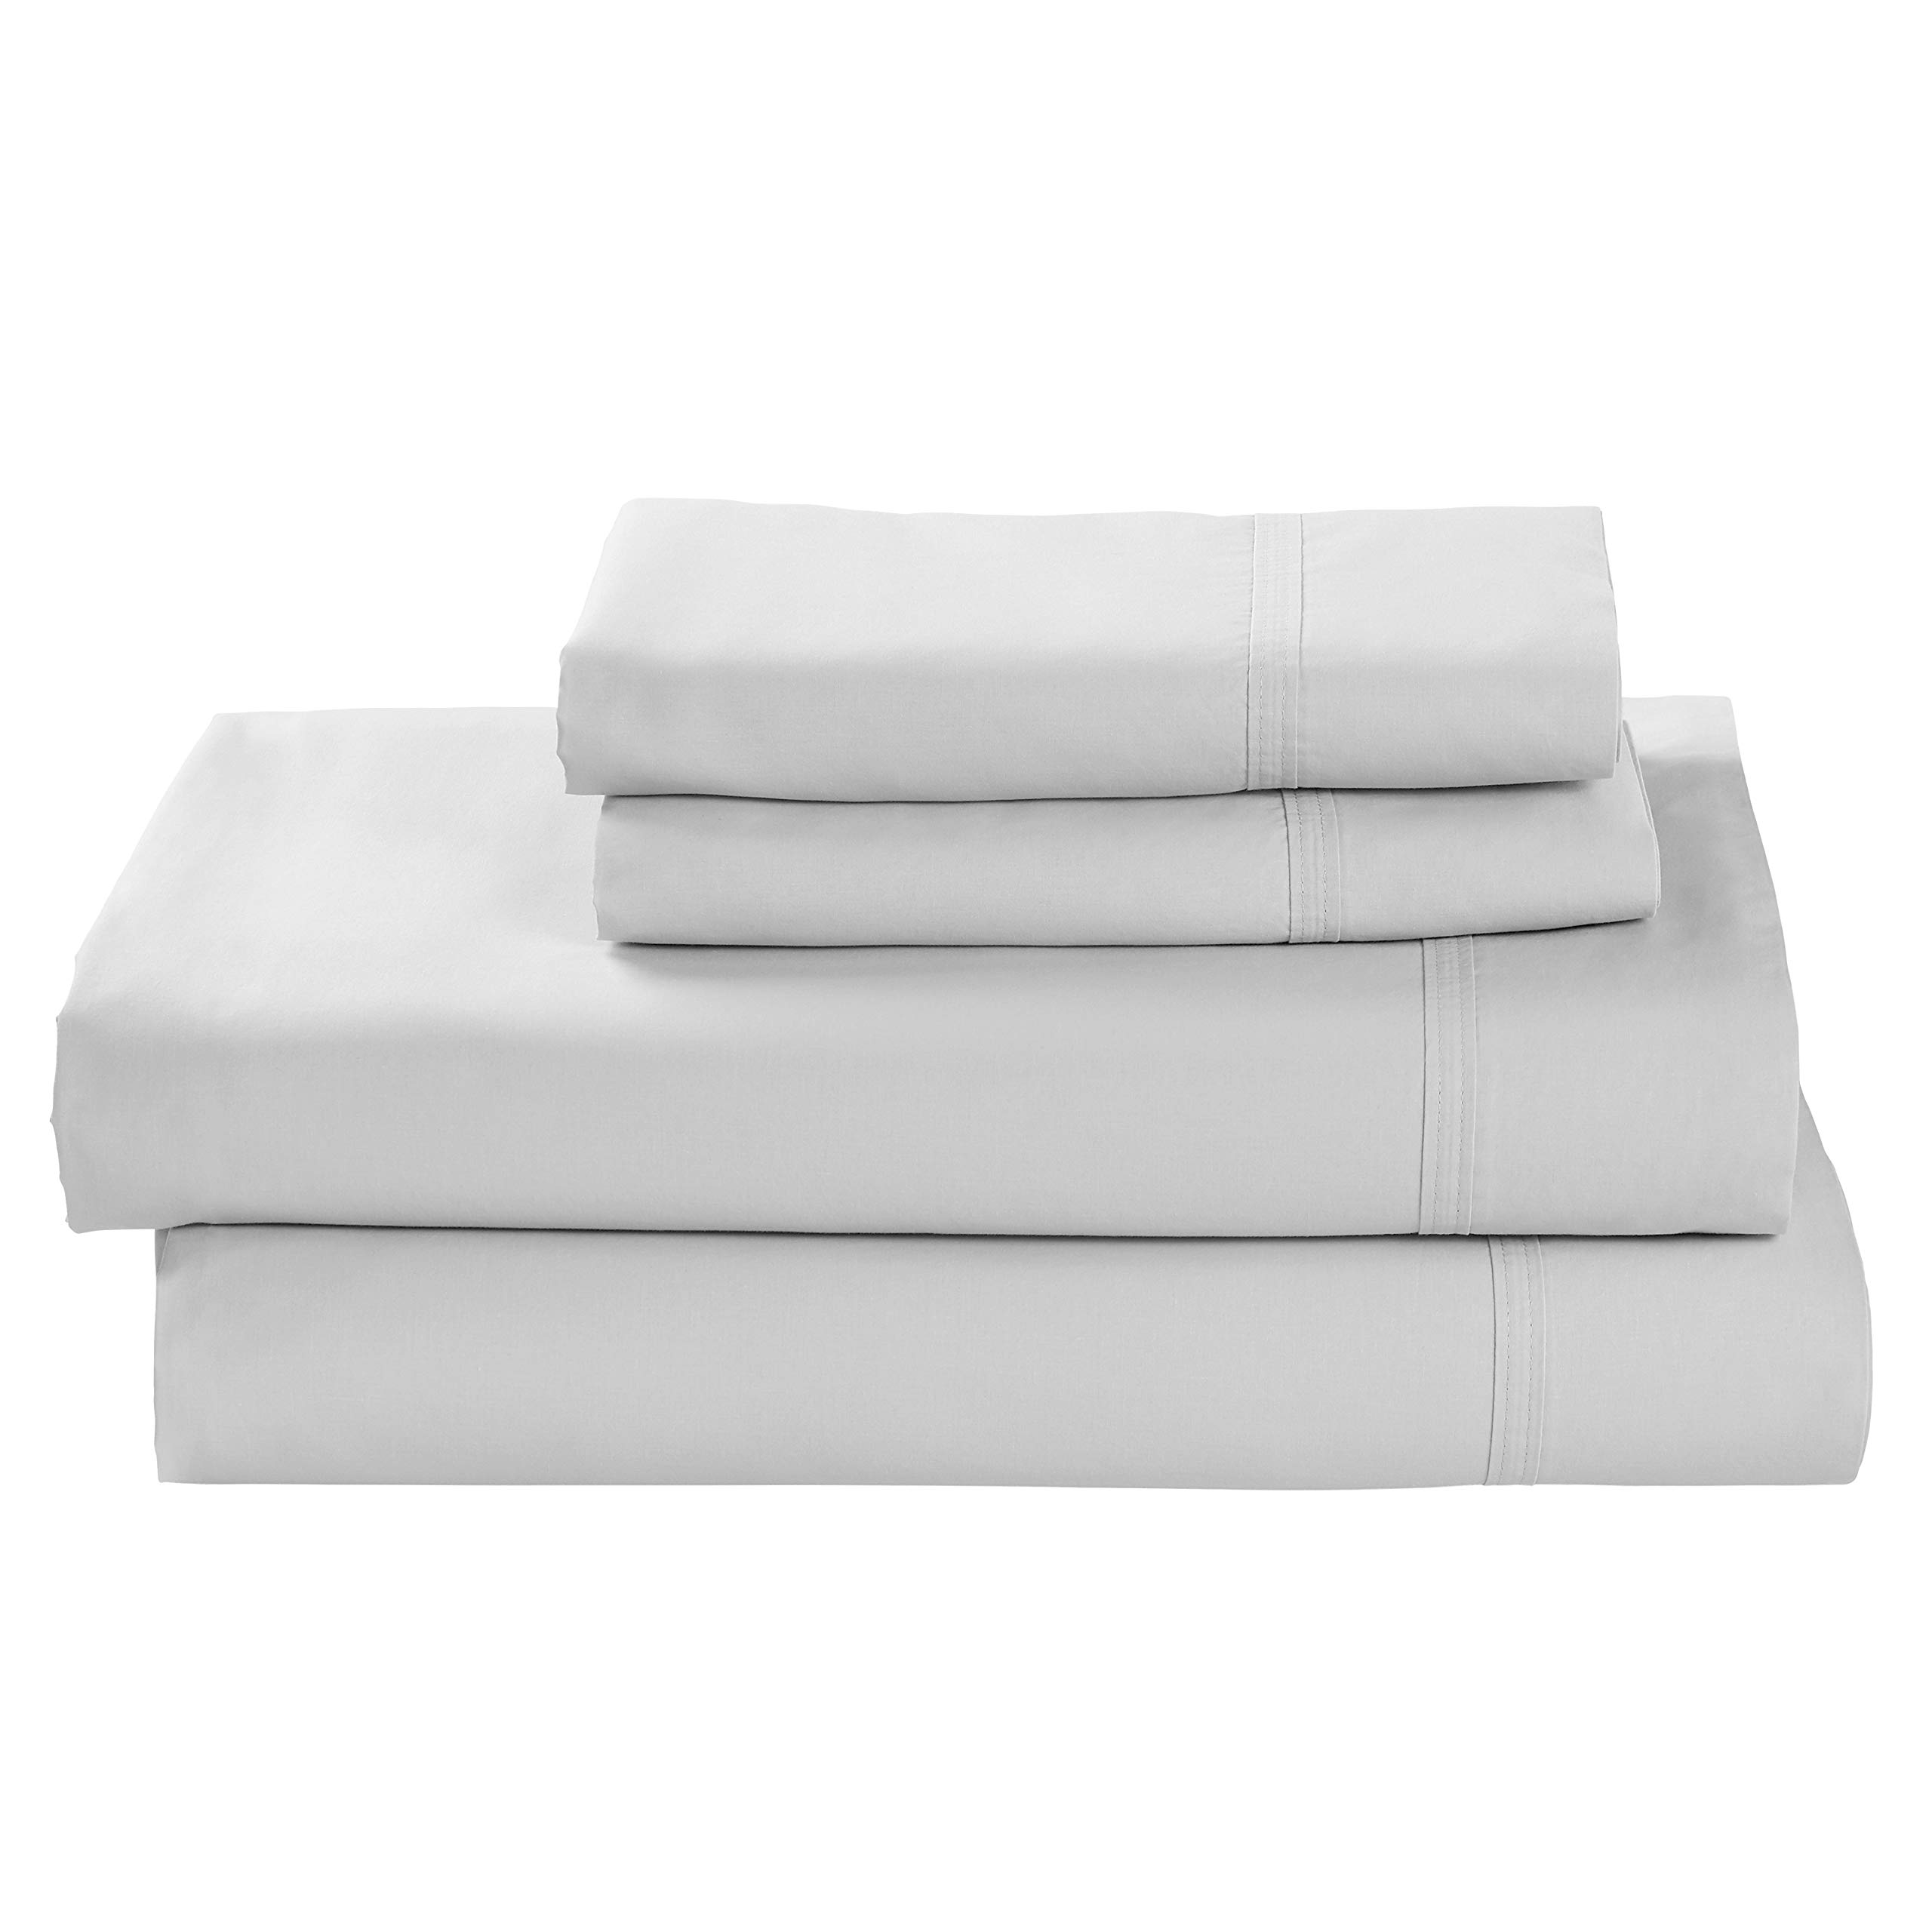 Rivet Percale 100% Organic Cotton Bed Sheet Set, Easy Care, King, White